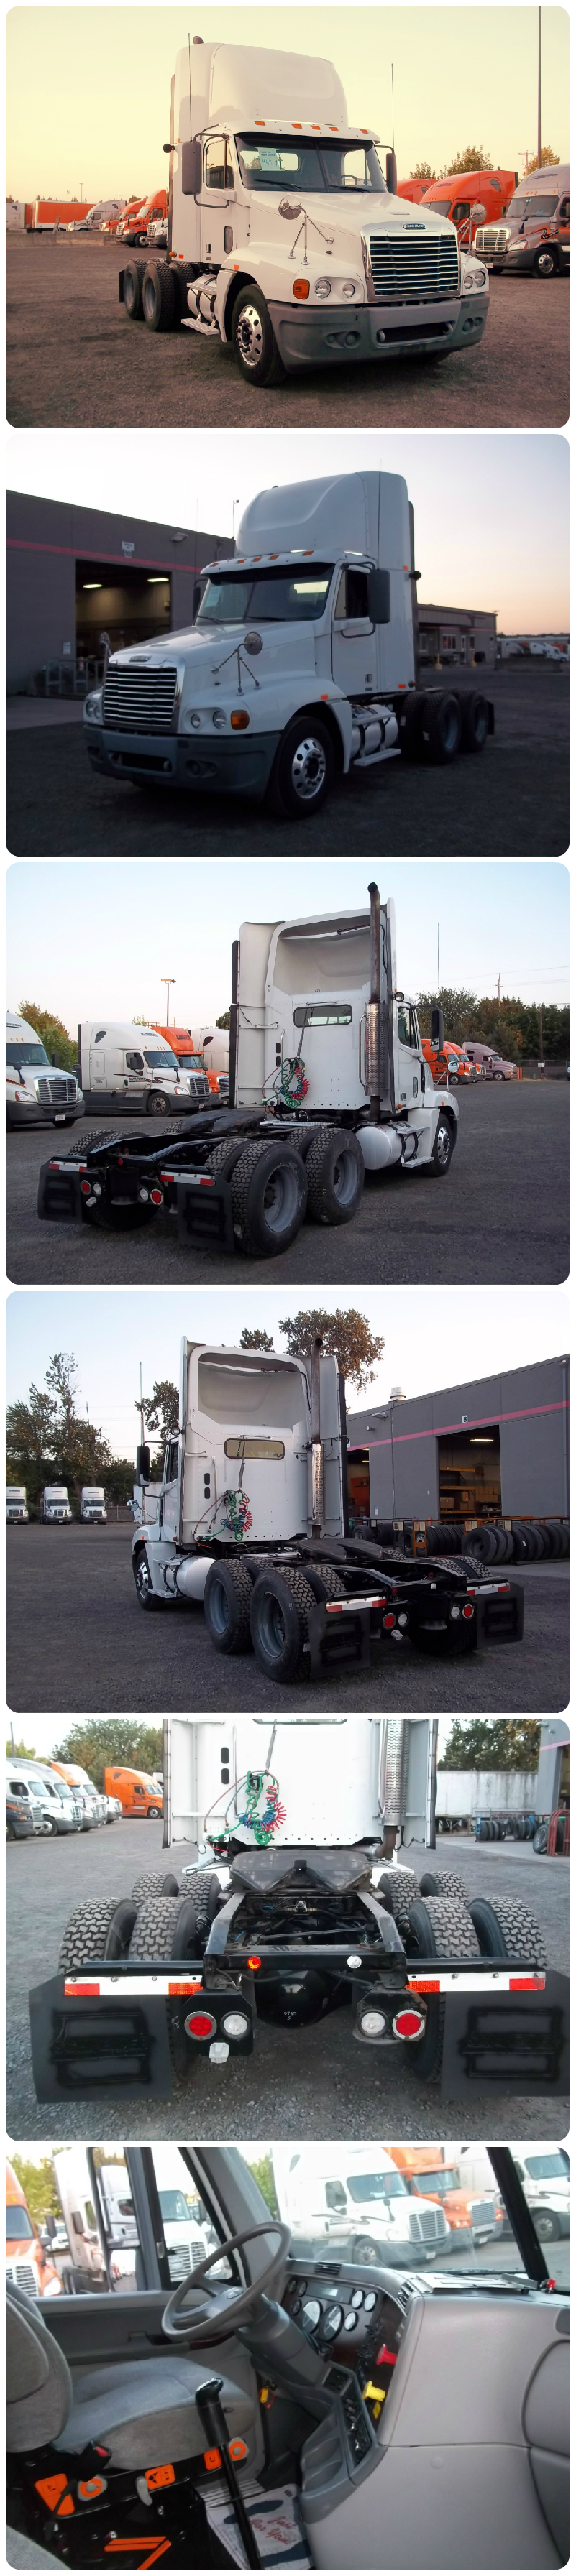 Clearance Sale 07 Freightliner C120 Day Cab W 457k Miles Was 33 100 Now 28 135 Save 4 965 Http Freightliner Used Trucks Used Trailers For Sale